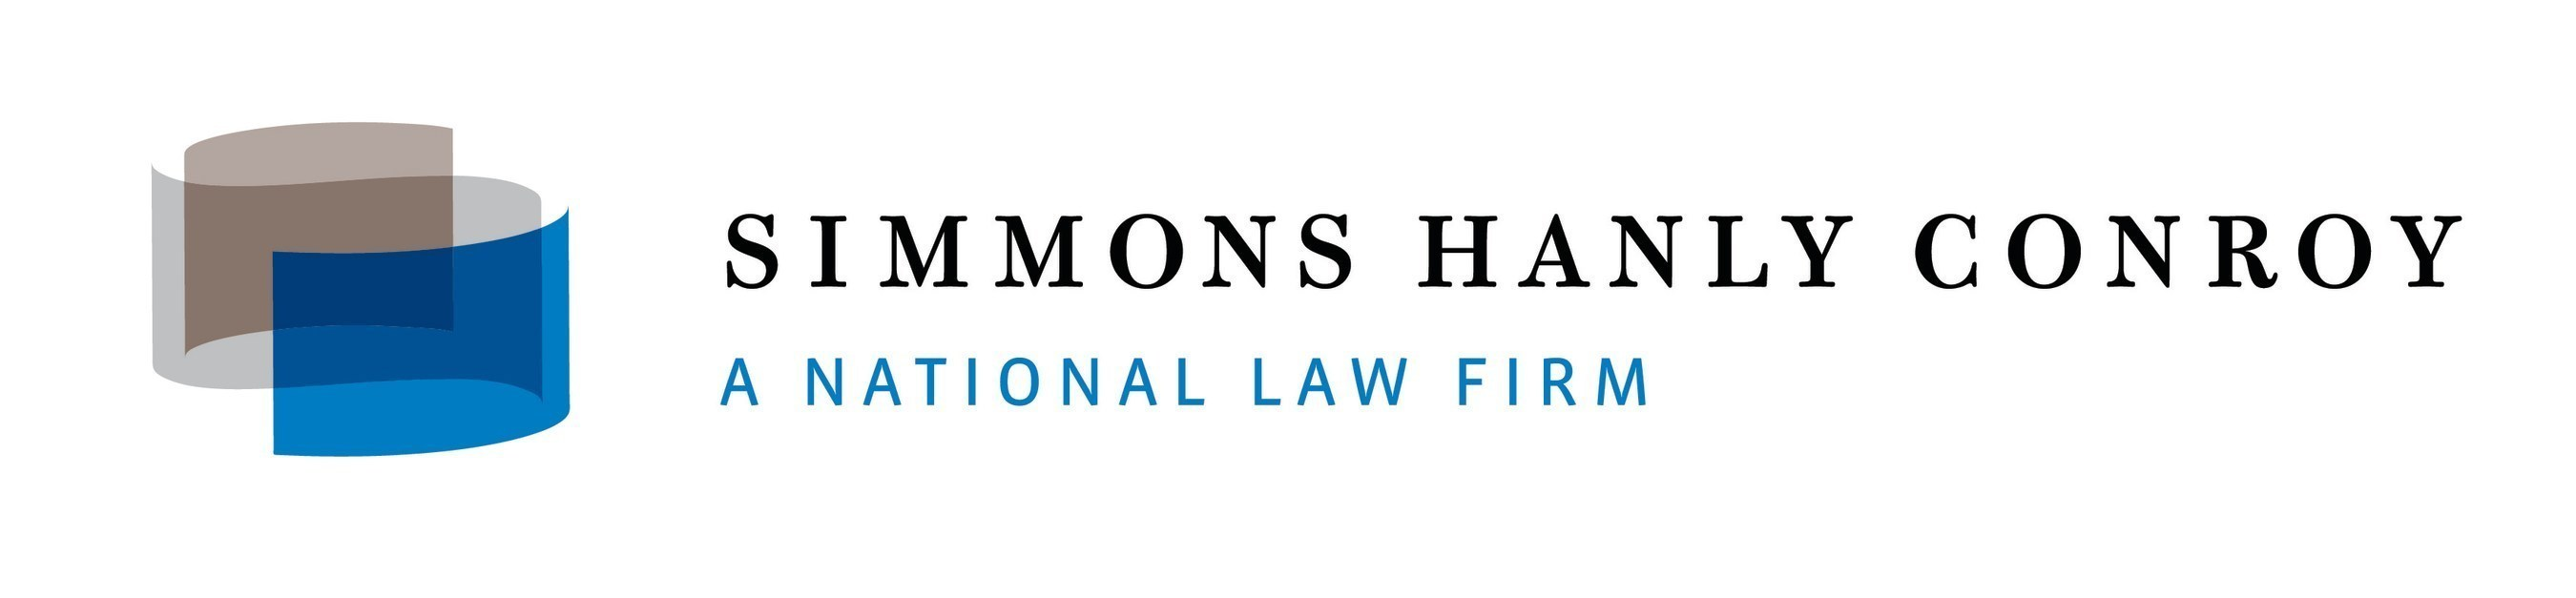 Simmons Hanly Conroy, LLC is one of the nation's largest mass tort law firms. Primary areas of litigation include asbestos and mesothelioma, pharmaceutical, consumer protection, environmental and personal injury.